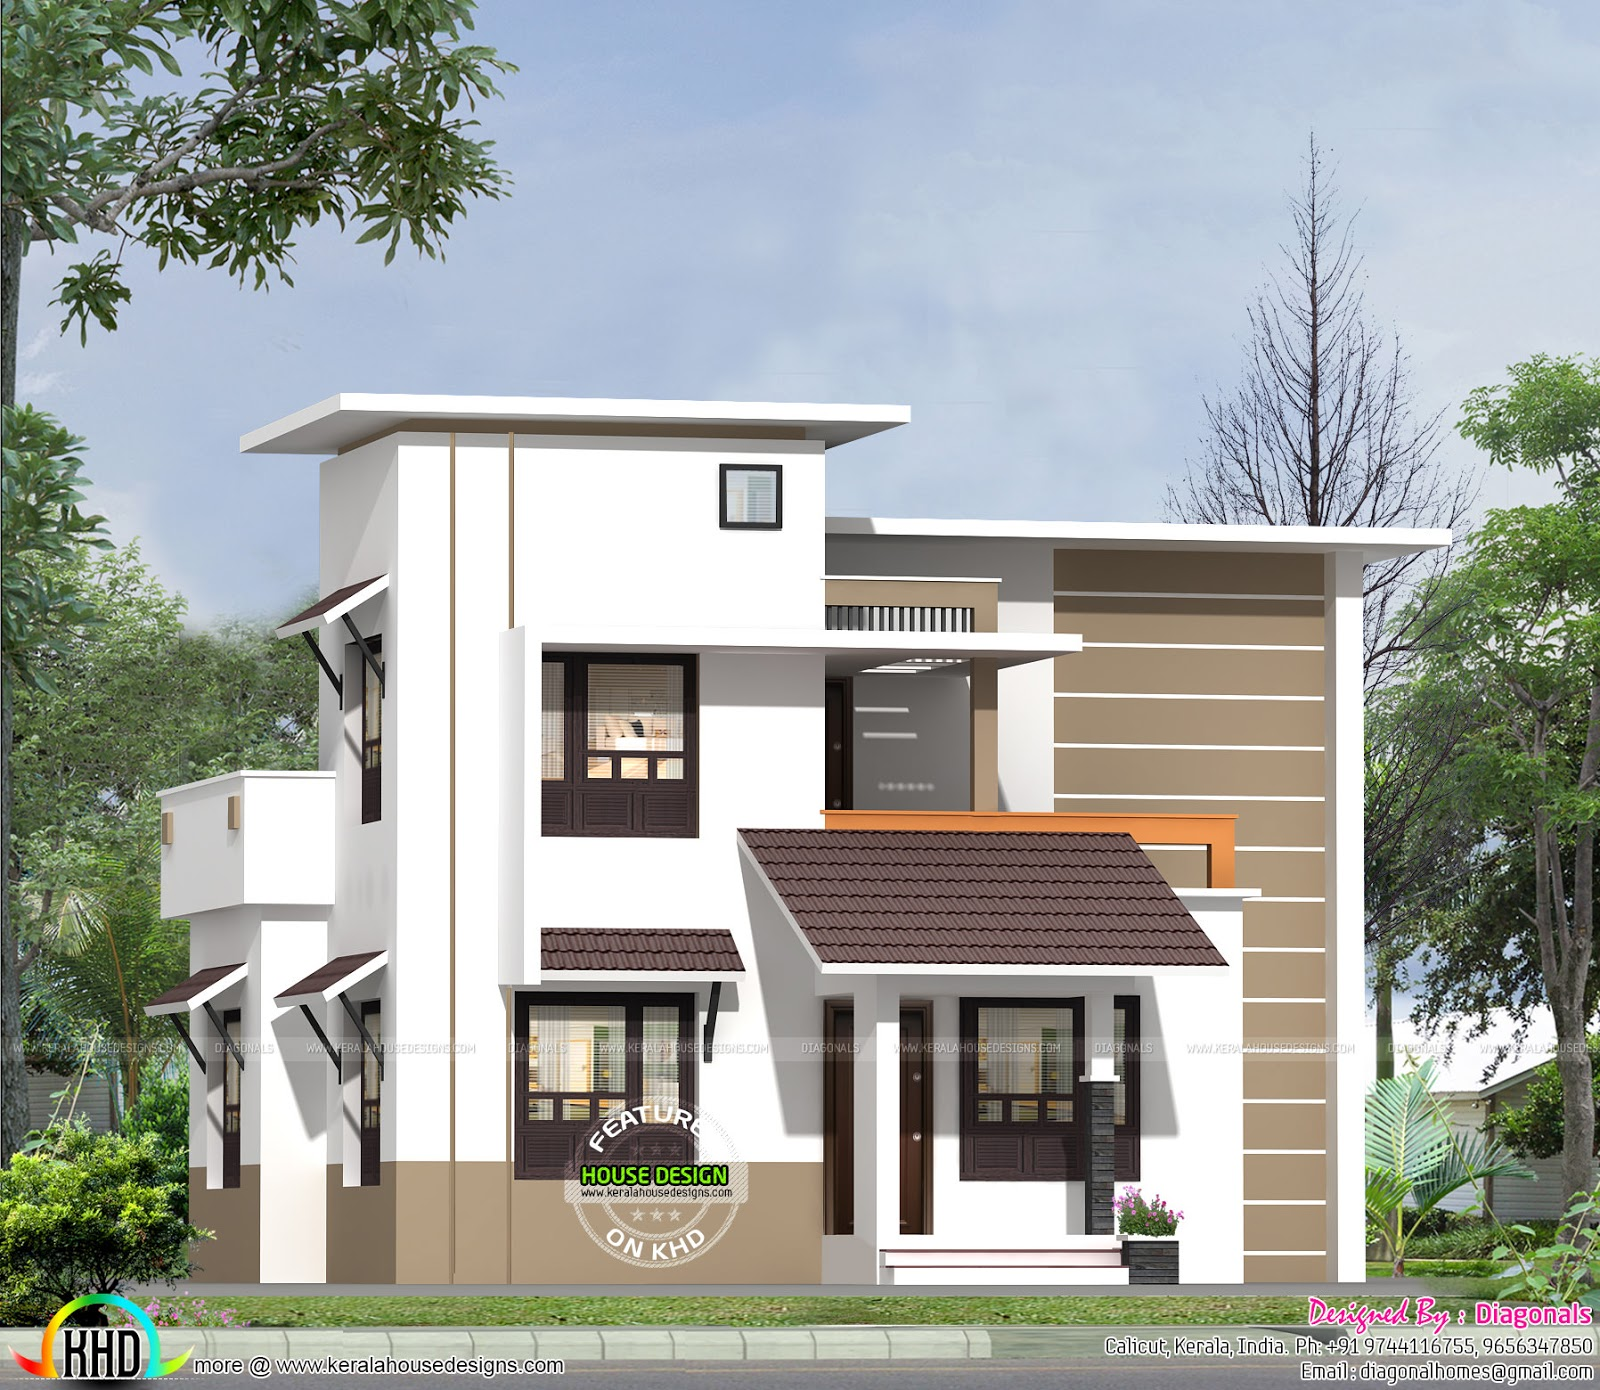 Affordable low cost home kerala home design and floor plans for Cost of house plans